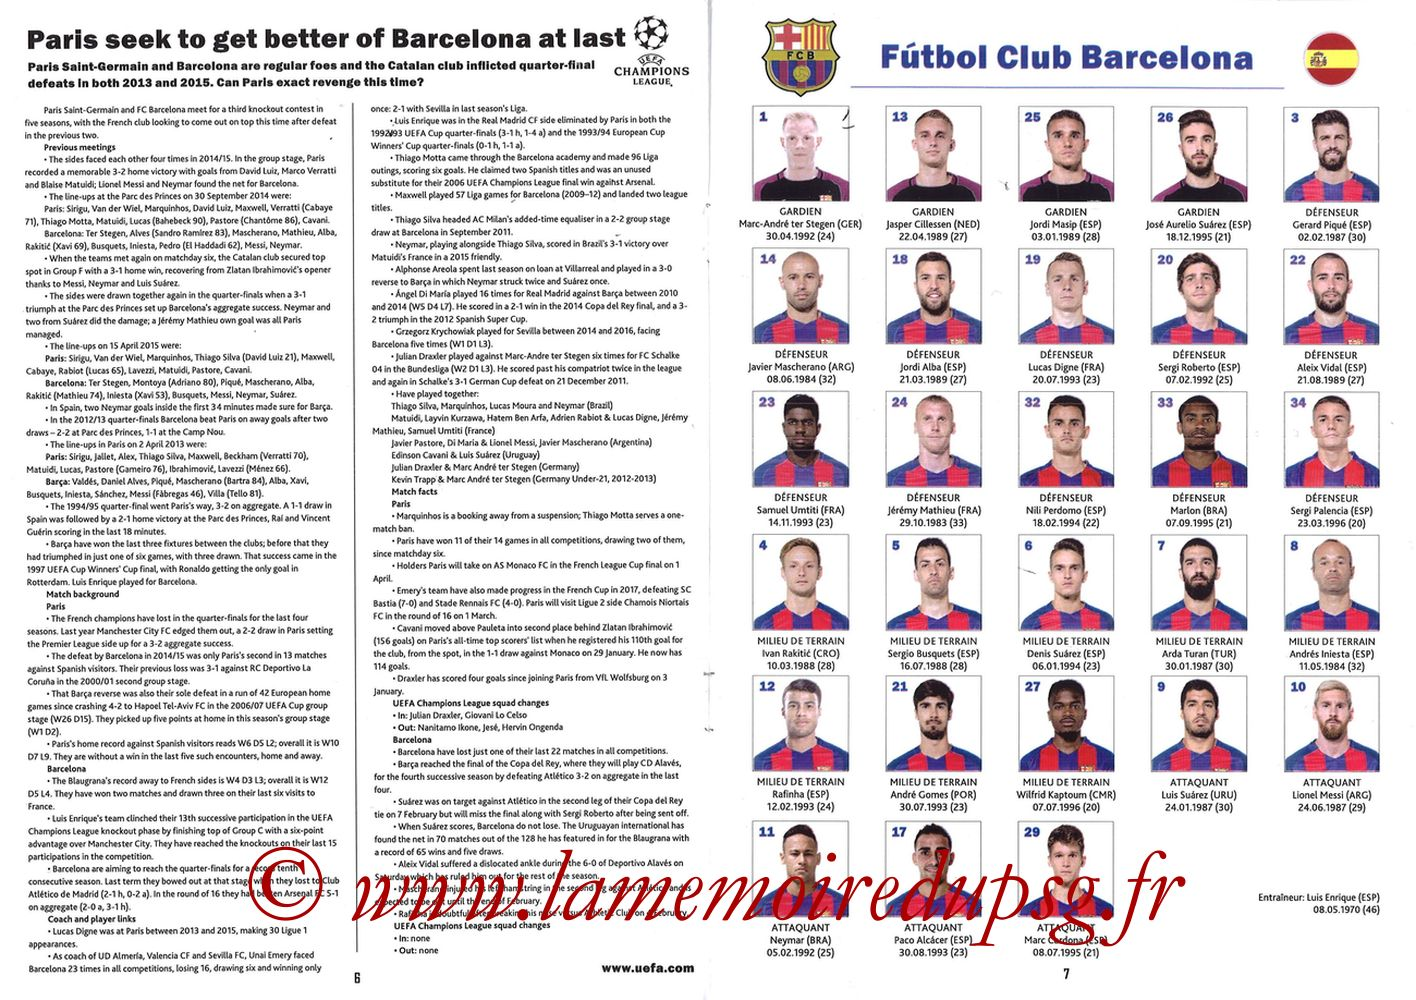 2017-02-14  PSG-Barcelone (8ème C1 aller, Programme pirate) - Pages 06 et 07